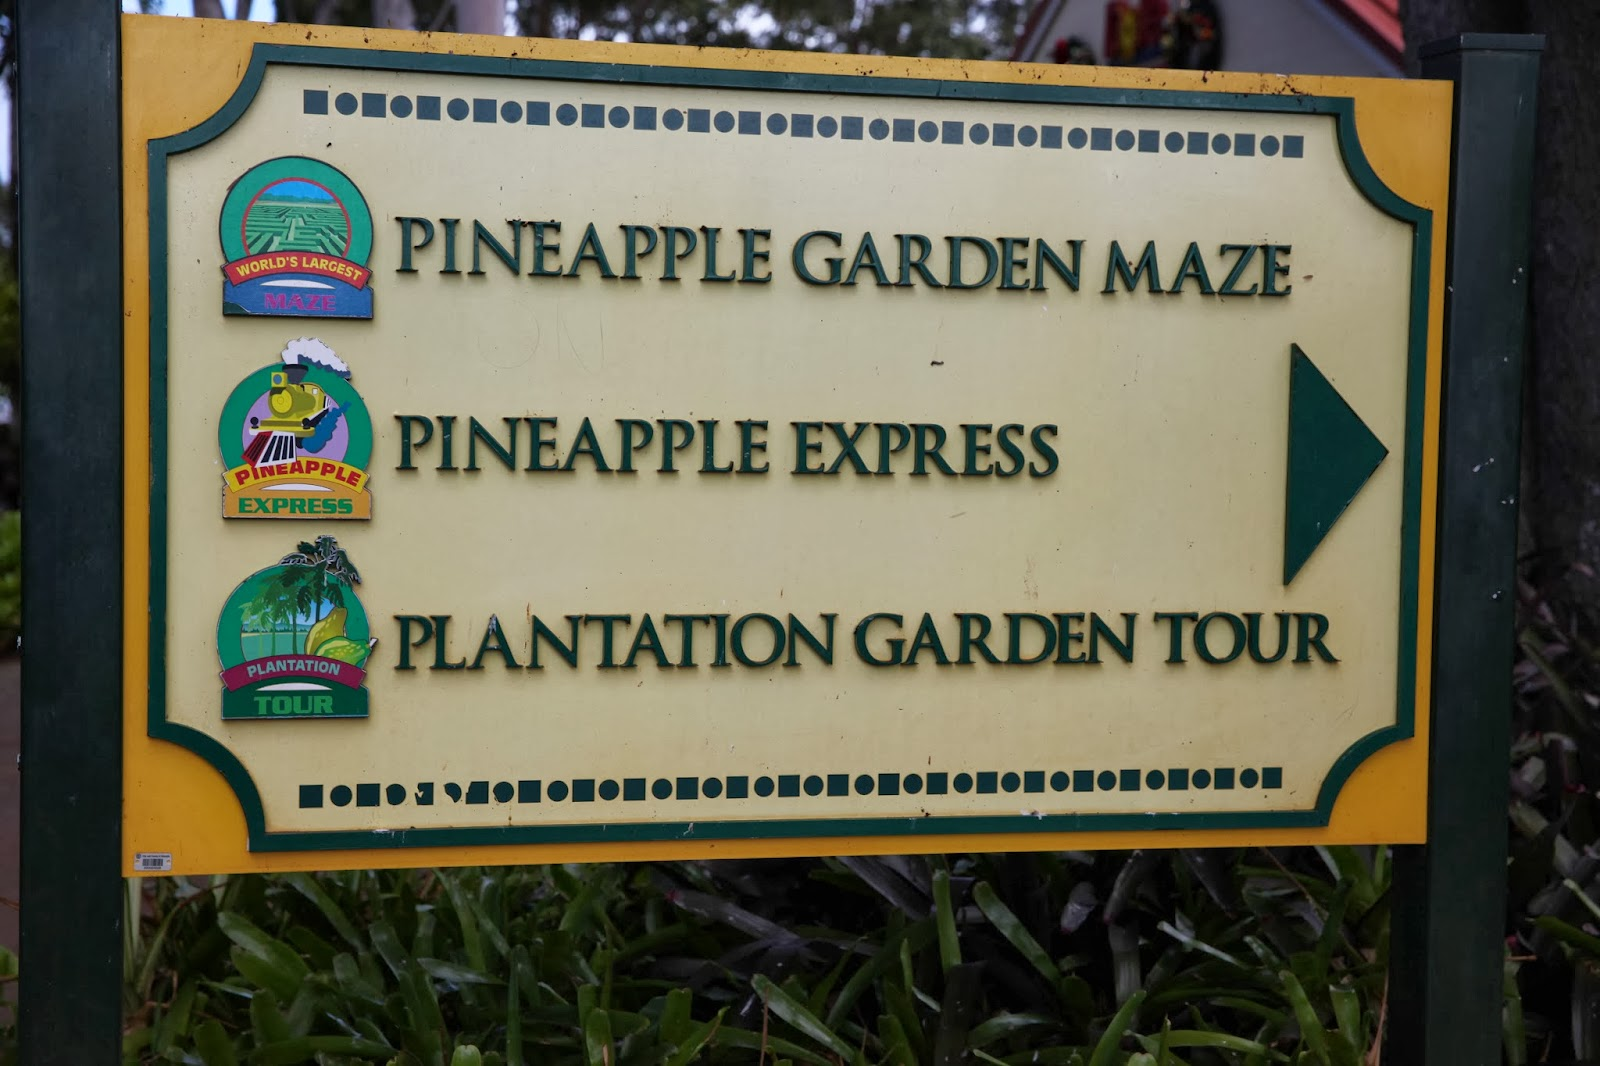 It S Fun 4 Me Oahu Hawaii Dole Plantation